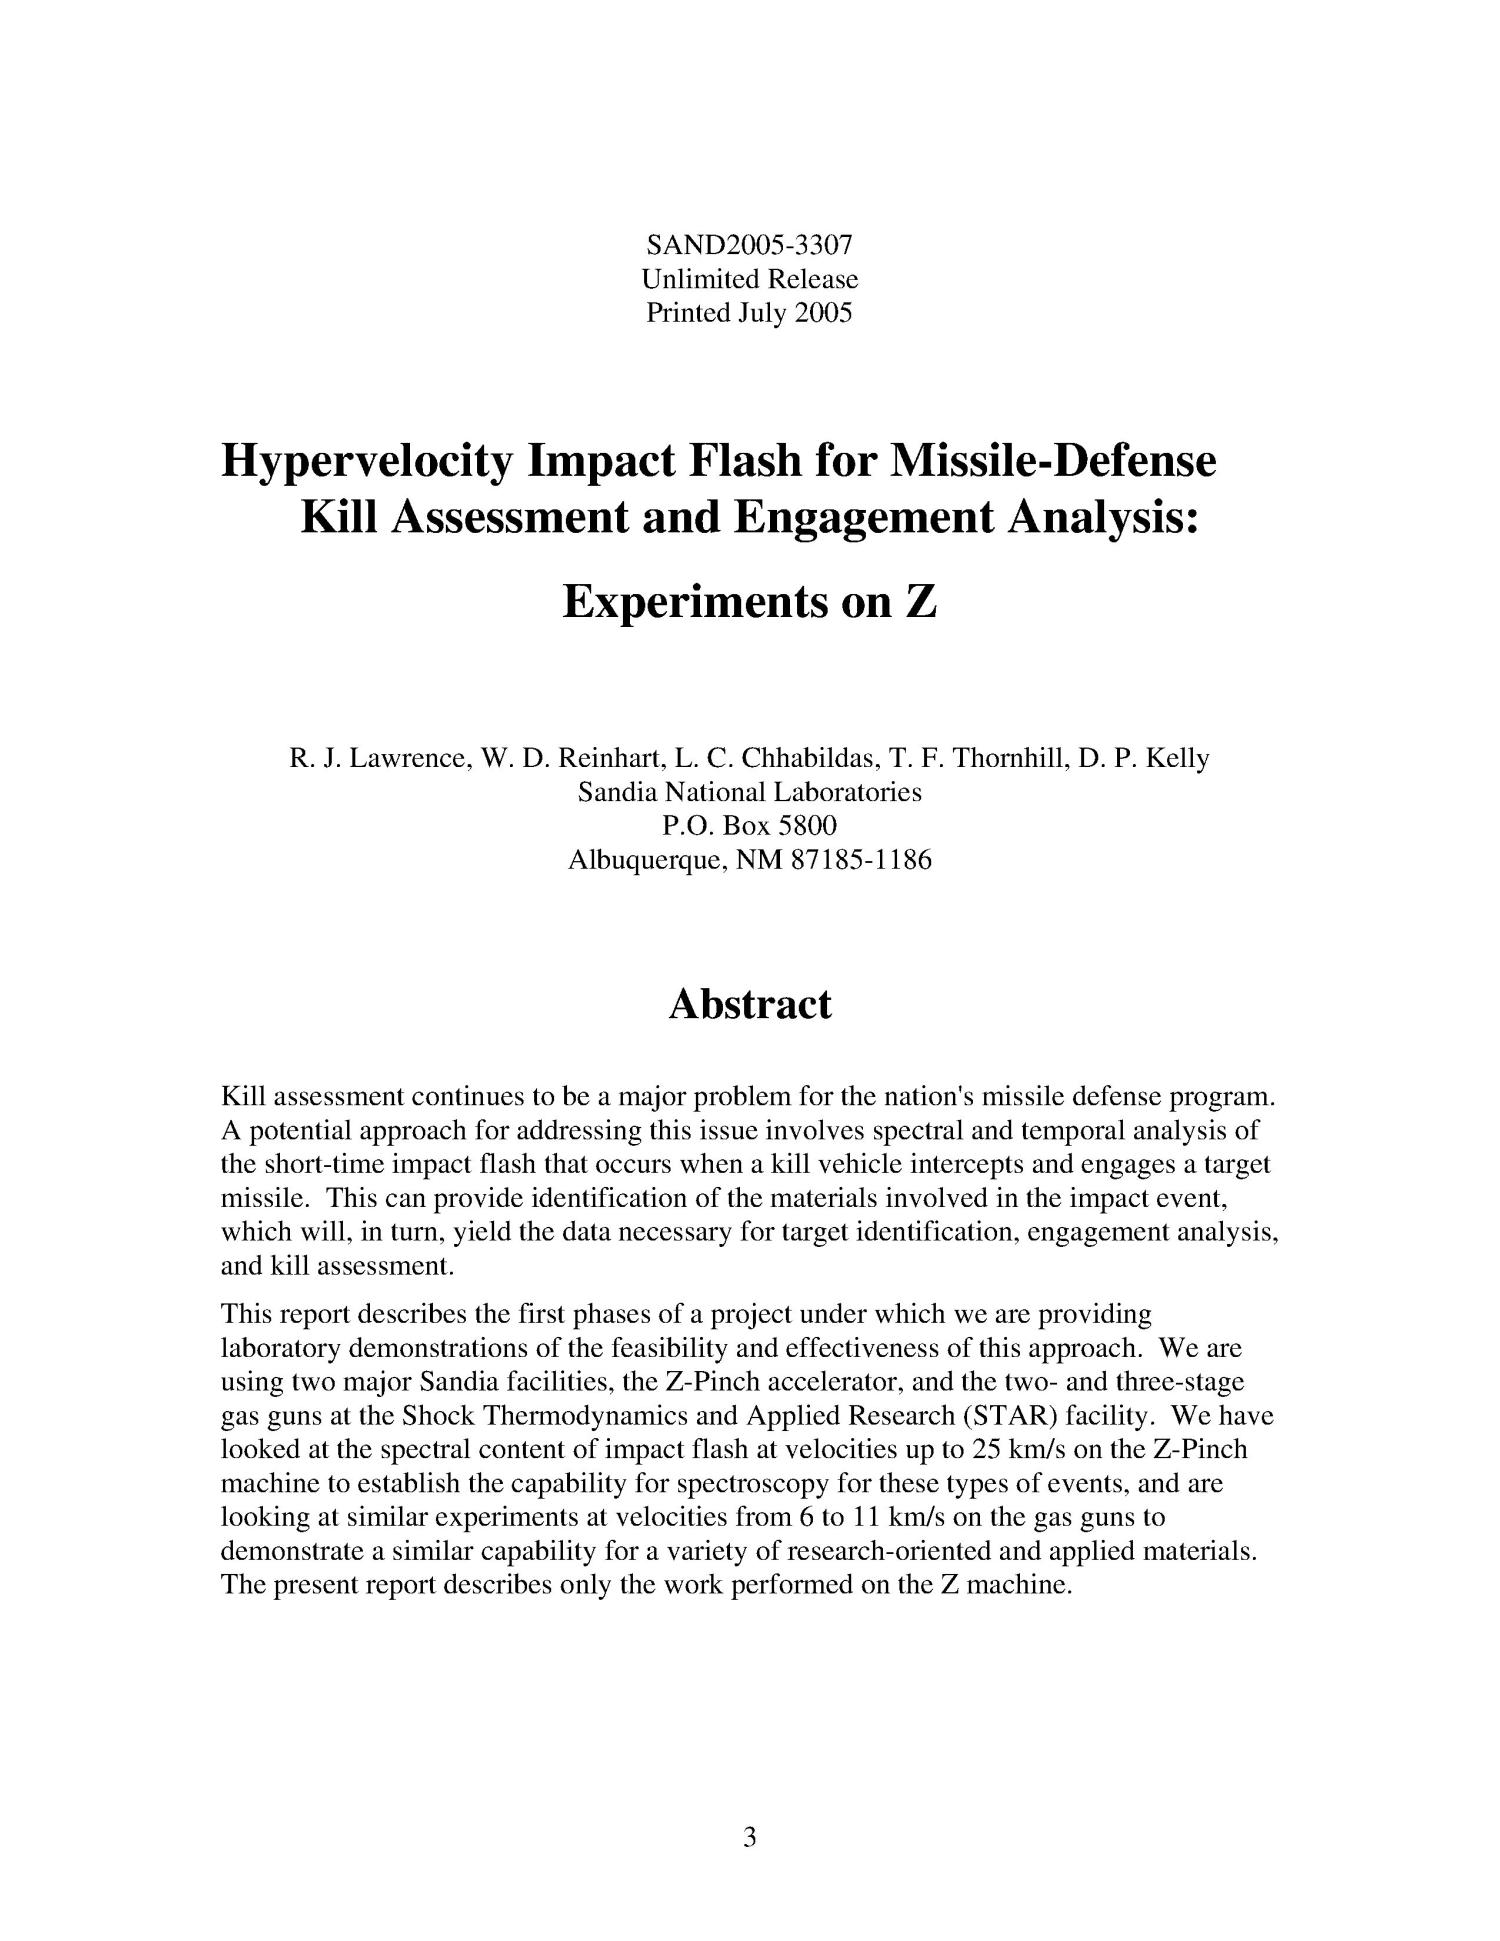 Hypervelocity impact flash for missile-defense kill assessment and engagement analysis : experiments on Z.                                                                                                      [Sequence #]: 3 of 32